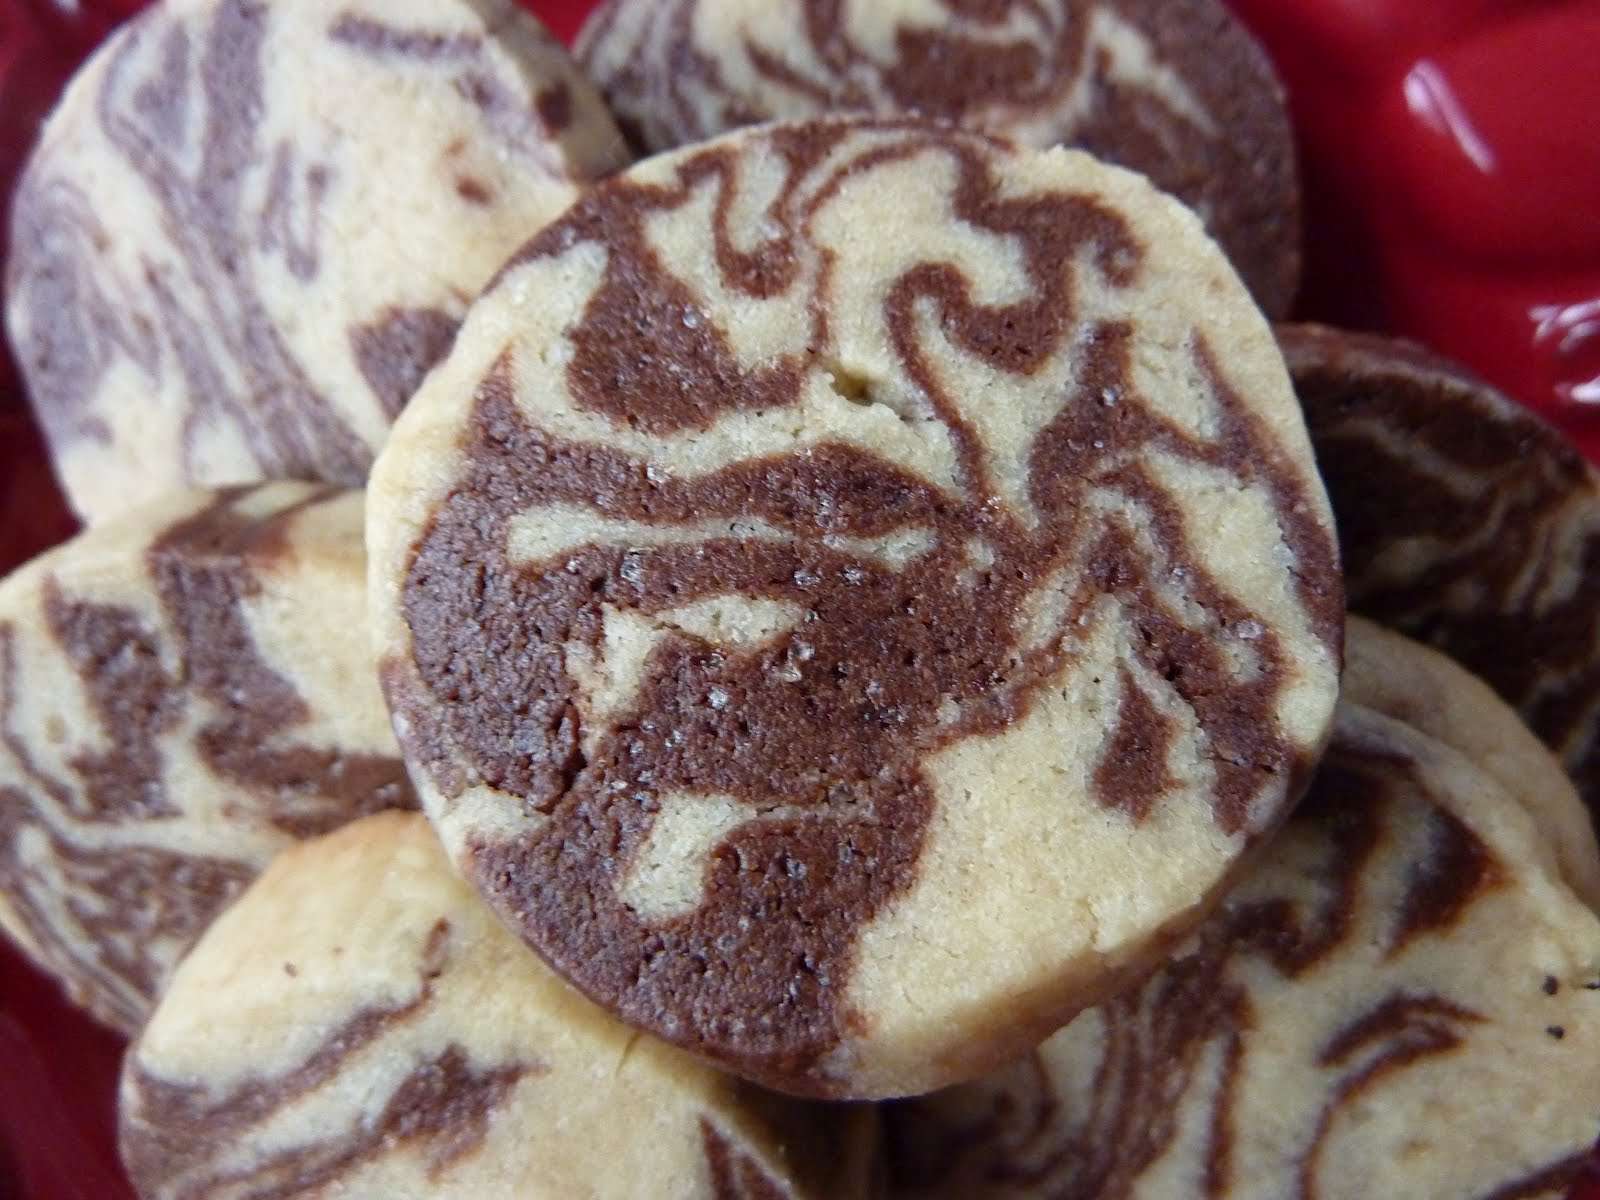 Cookies on Friday: Chocolate Peanut Butter Marble Cookies